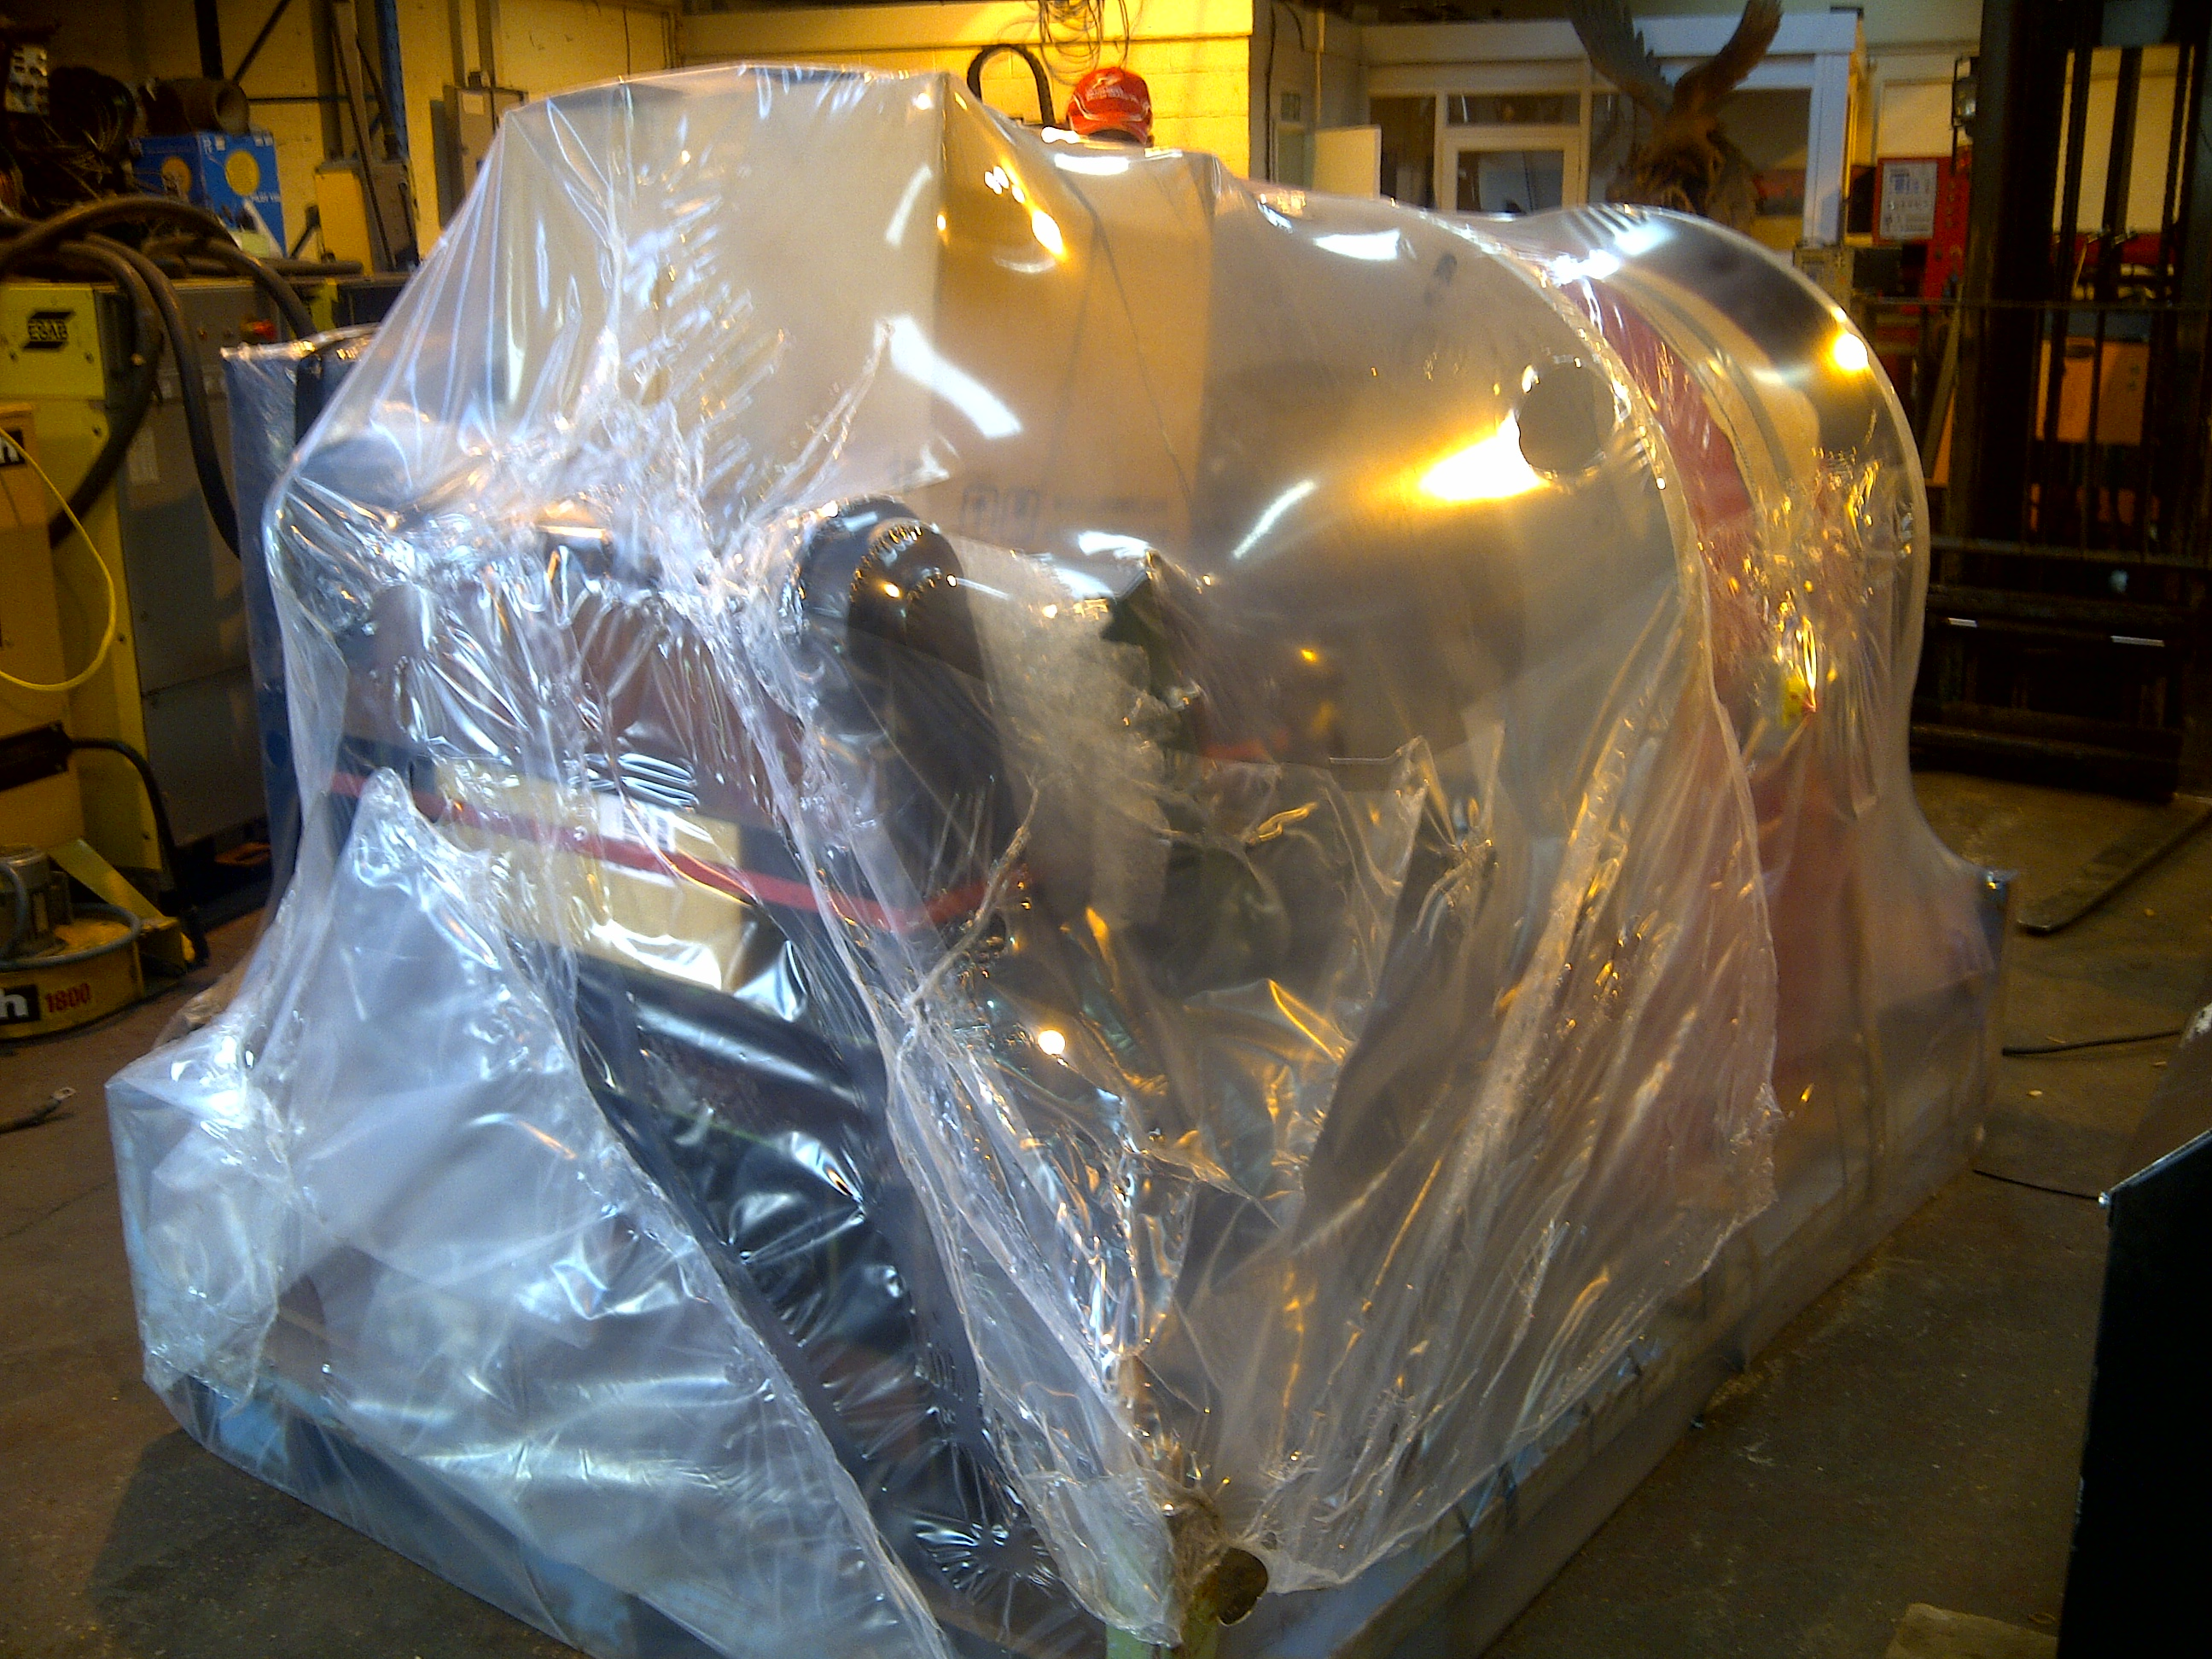 Refurbished Pipe Cutting Machine from Westermans - before